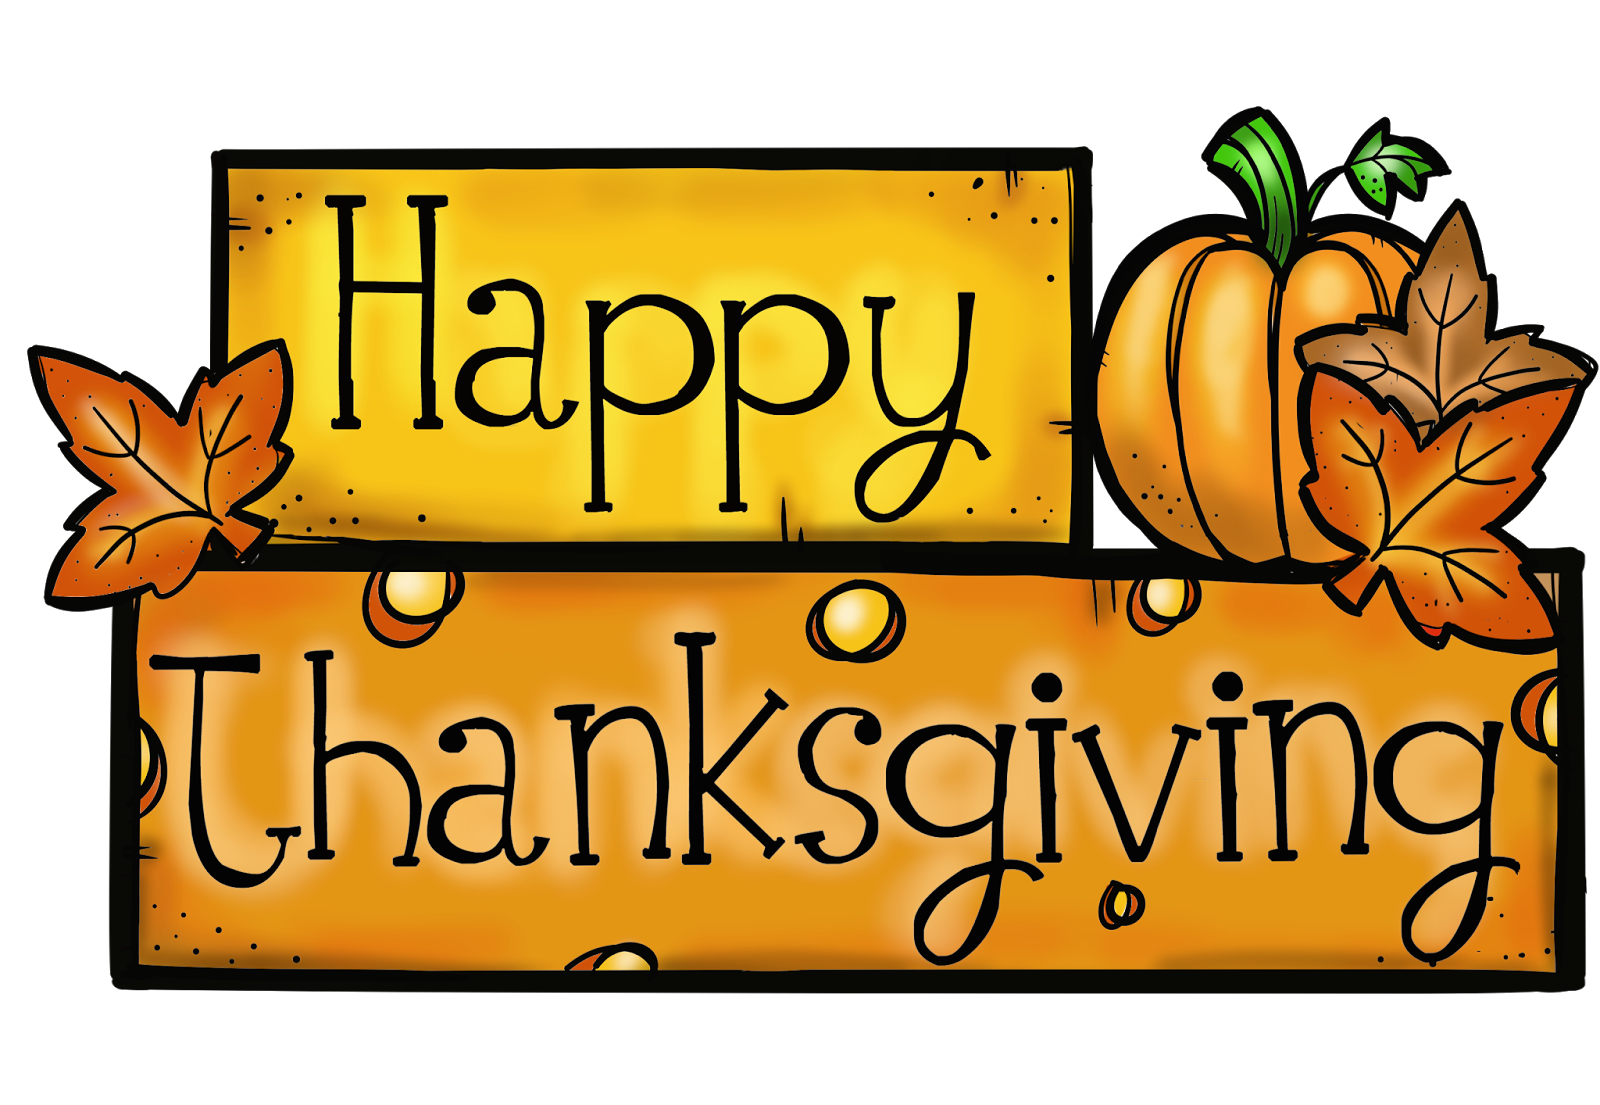 Clipart happy thanksgiving signs clipart black and white stock November 2017 - HAPPINESS IS WATERMELON SHAPED! clipart black and white stock